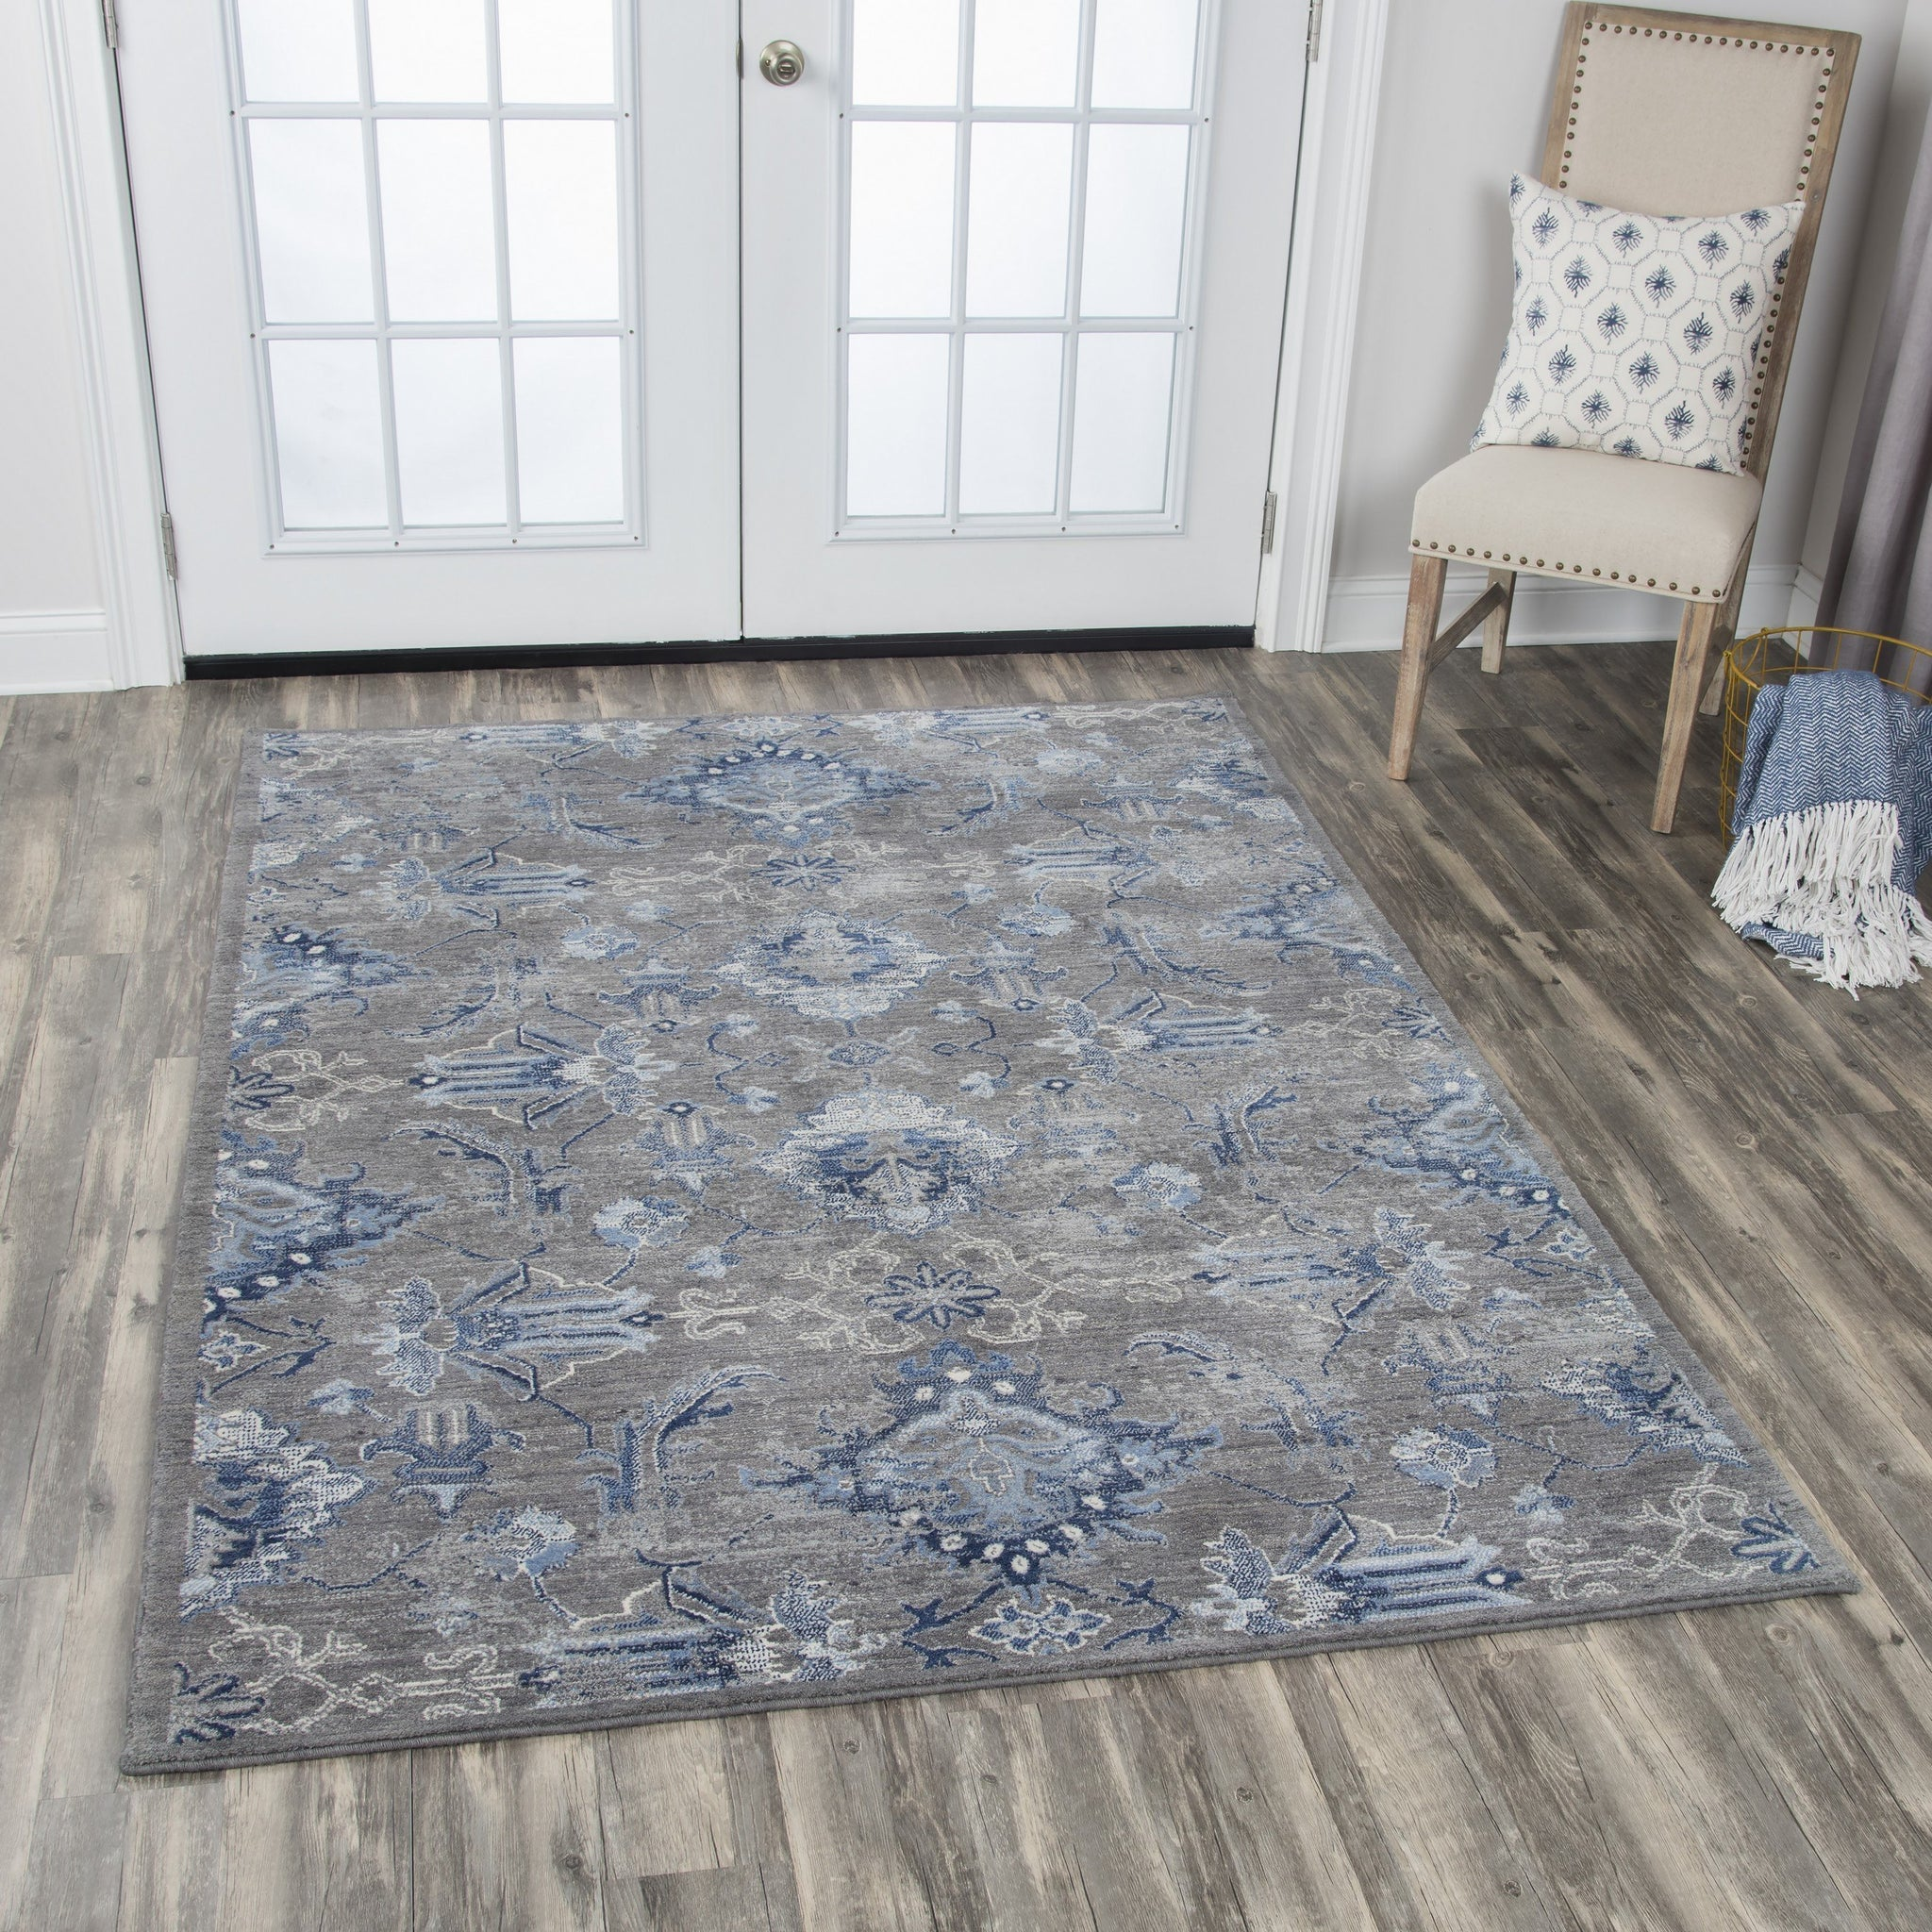 Gossamer Area Rugs By RizzyHome GS7225 Gray 100% Wool From India Room Shot